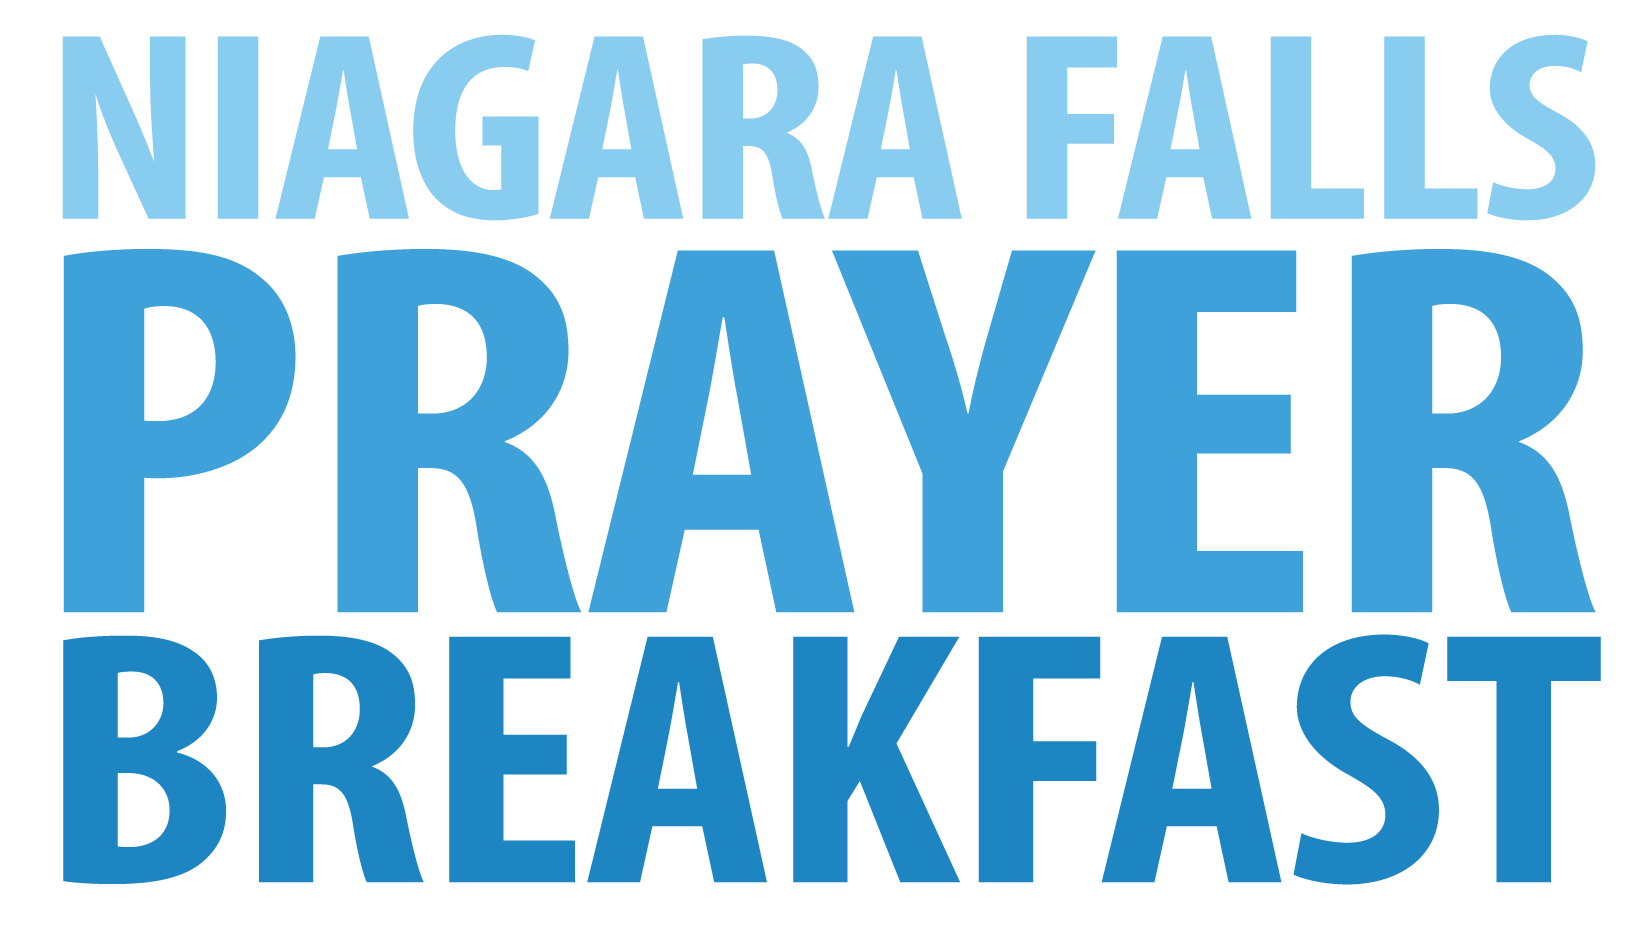 Niagara Falls Prayer Breakfast